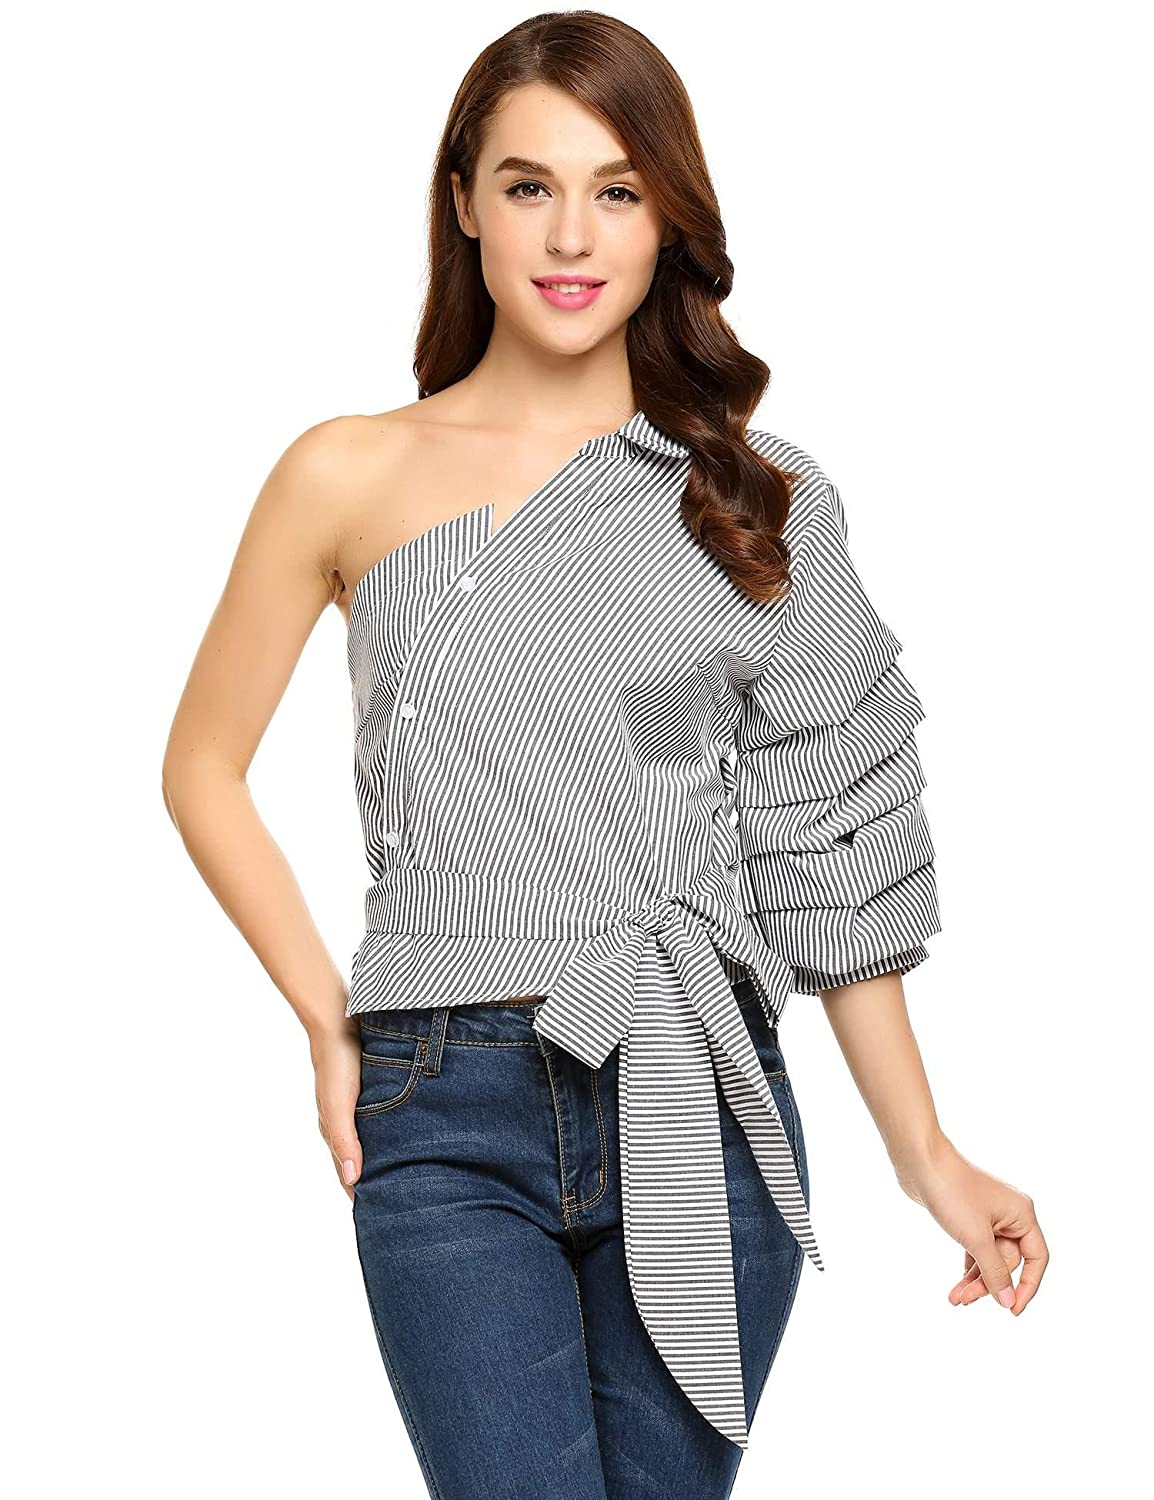 cd16669b06 Zeagoo Women Casual One Shoulder Blouse Waist Bow Top Puff Sleeve Striped  Shirt at Amazon Women's Clothing store: